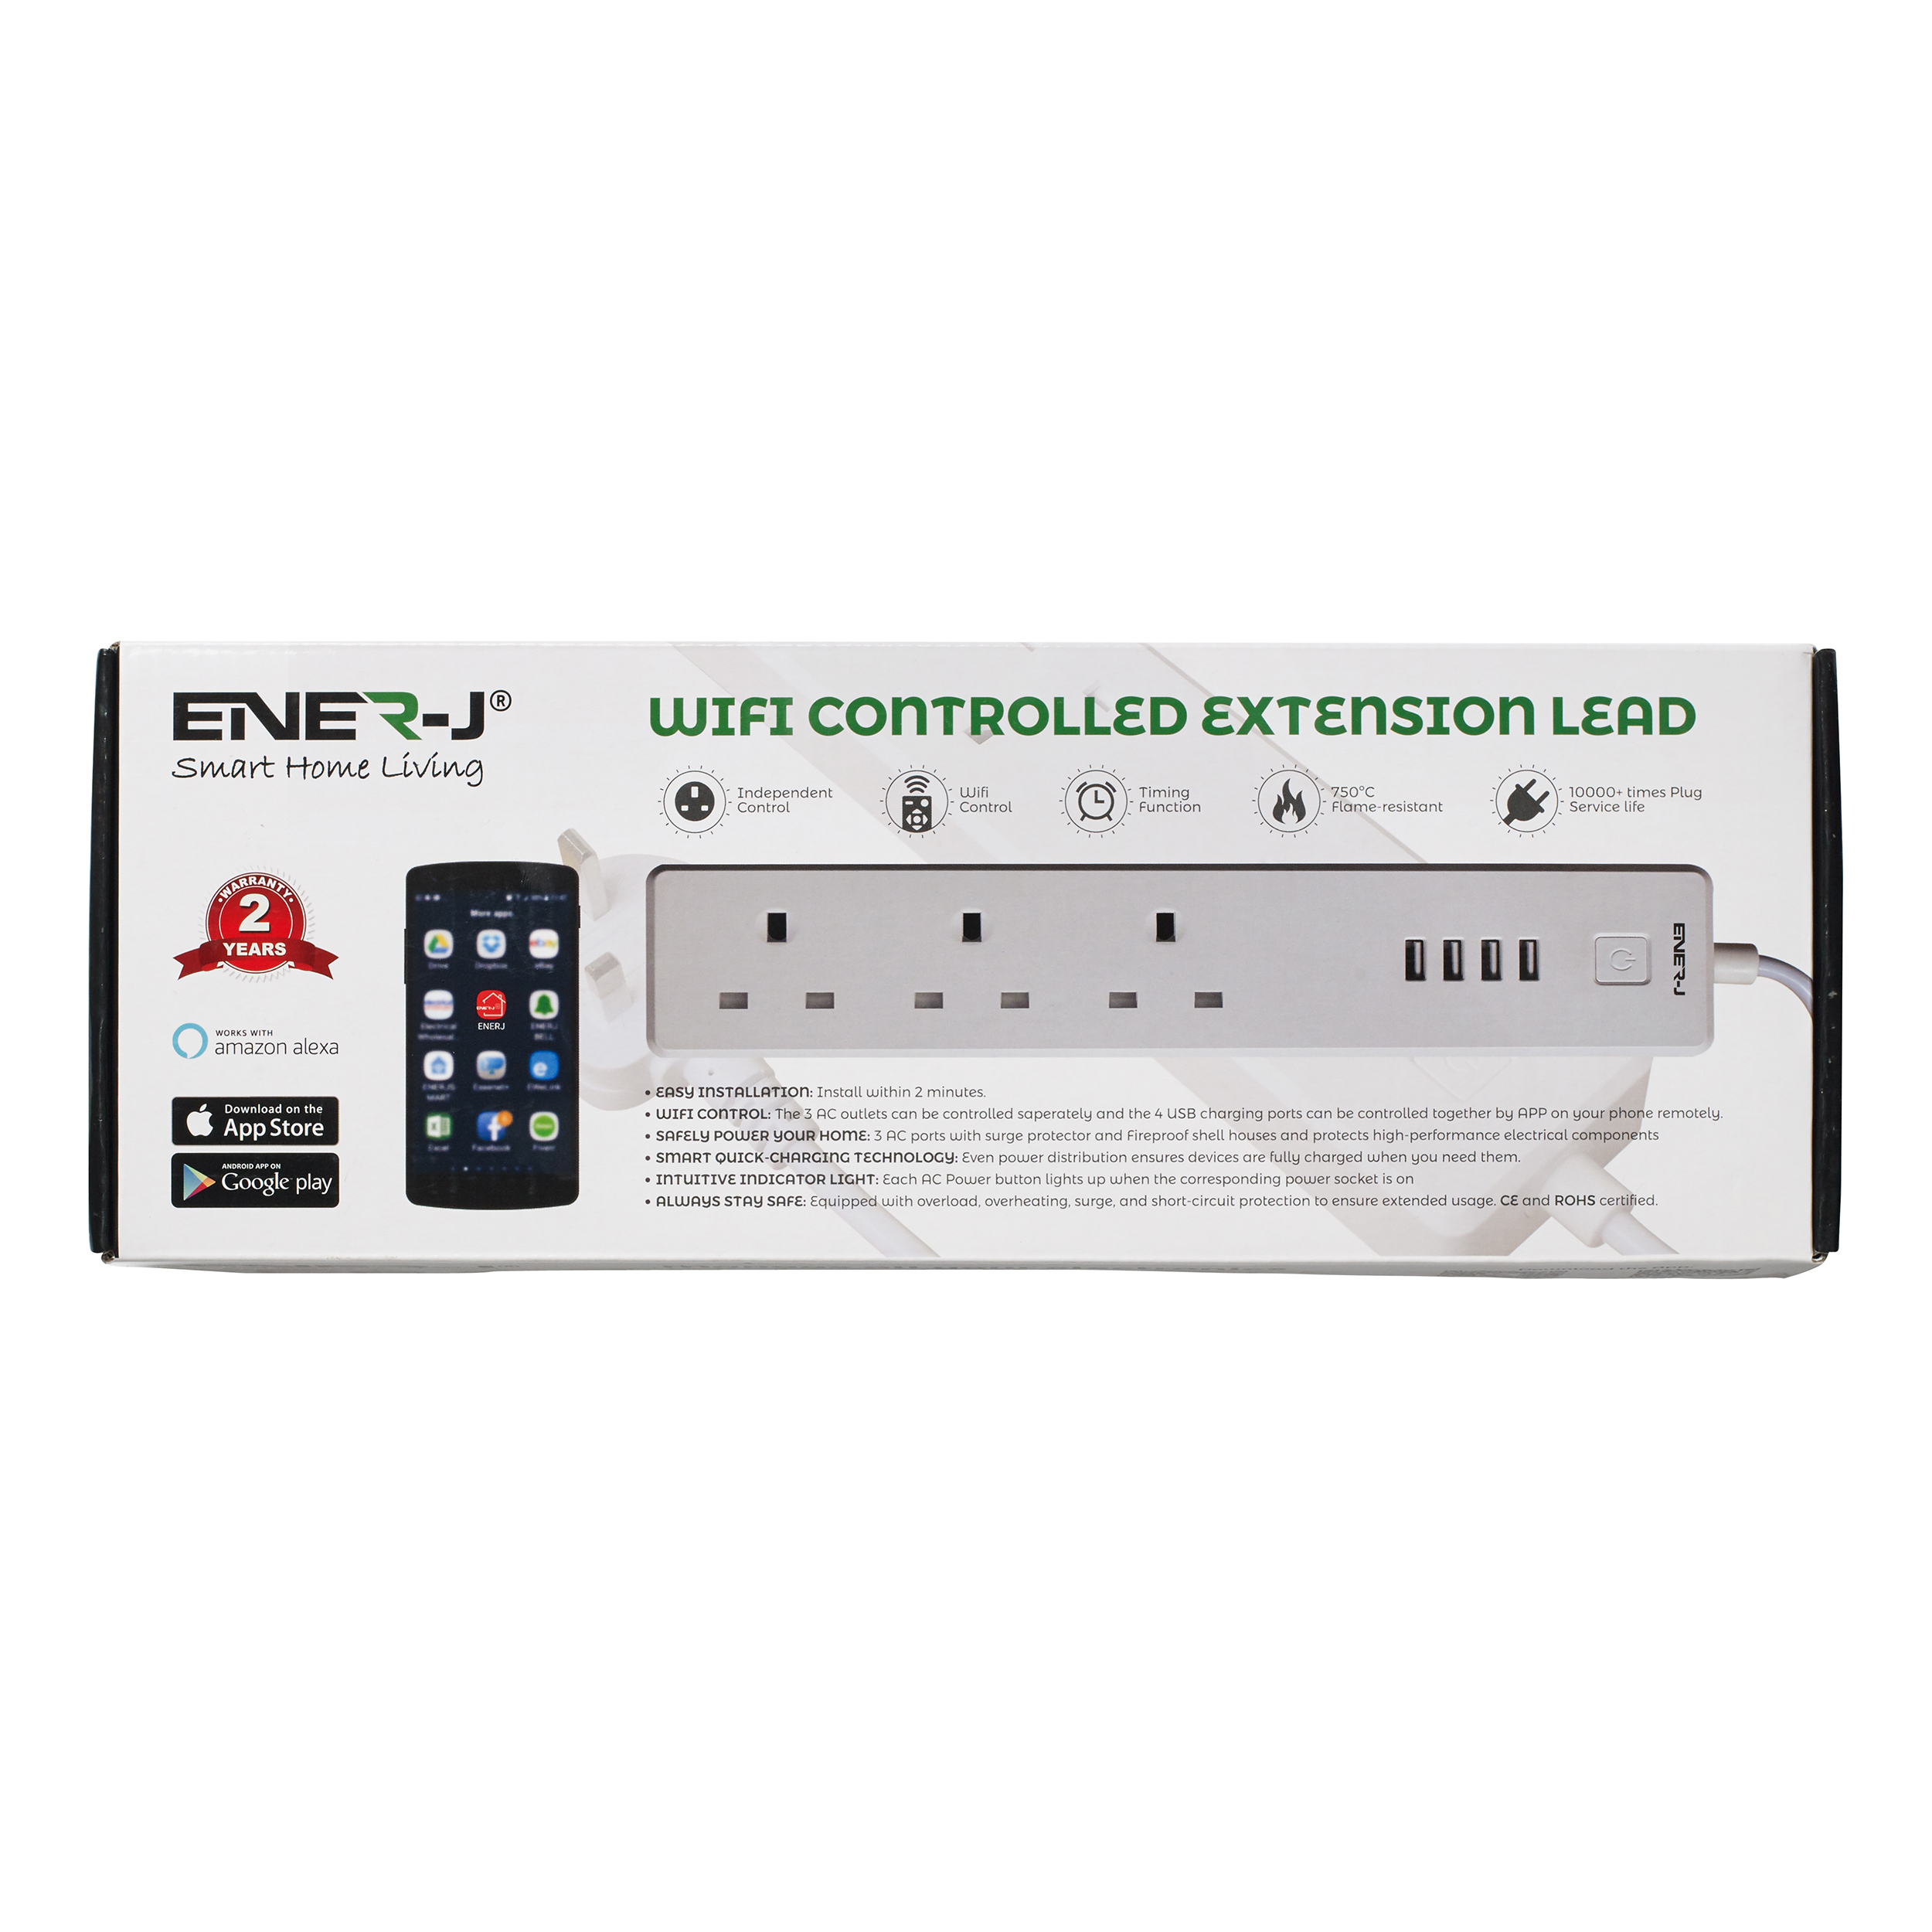 Cables & Adaptors Ener-J WiFi Power Extension Lead 1.8metre With 3 AC Ports And Surge Protector Ref SHA5207